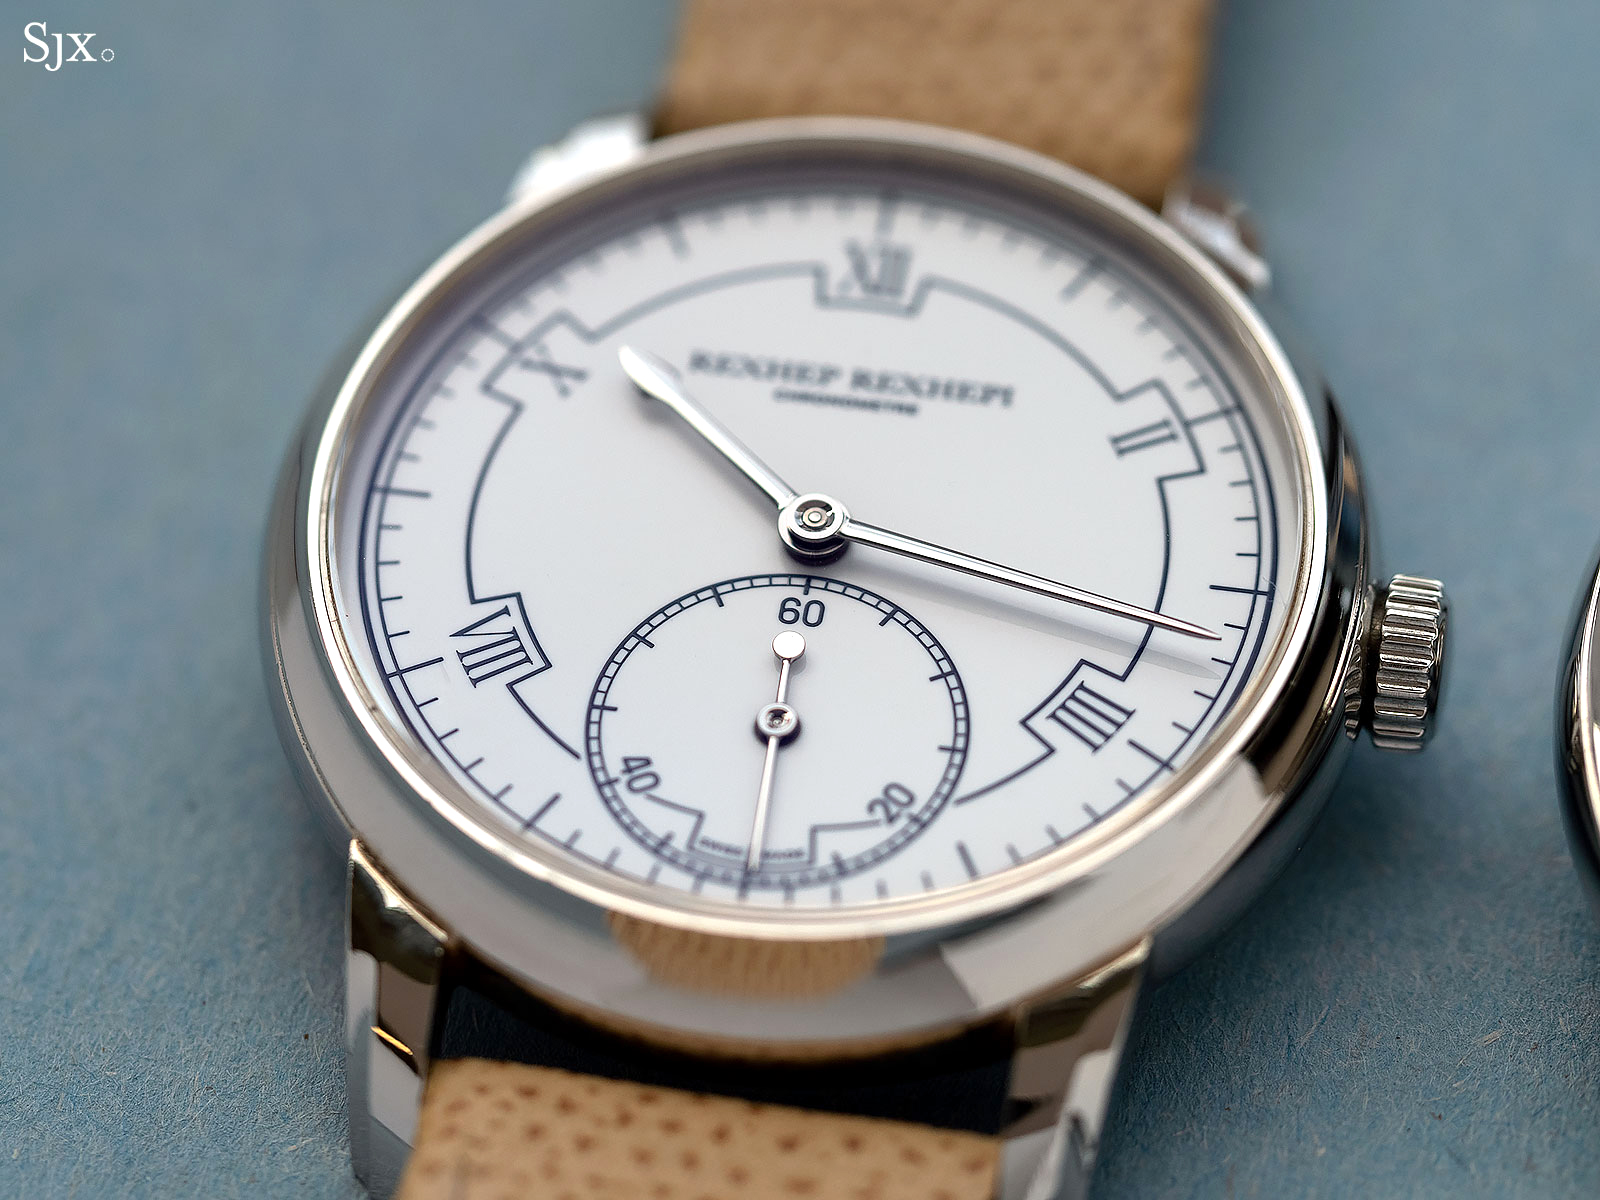 rexhep rexhepi chronometre contemporain compare 2